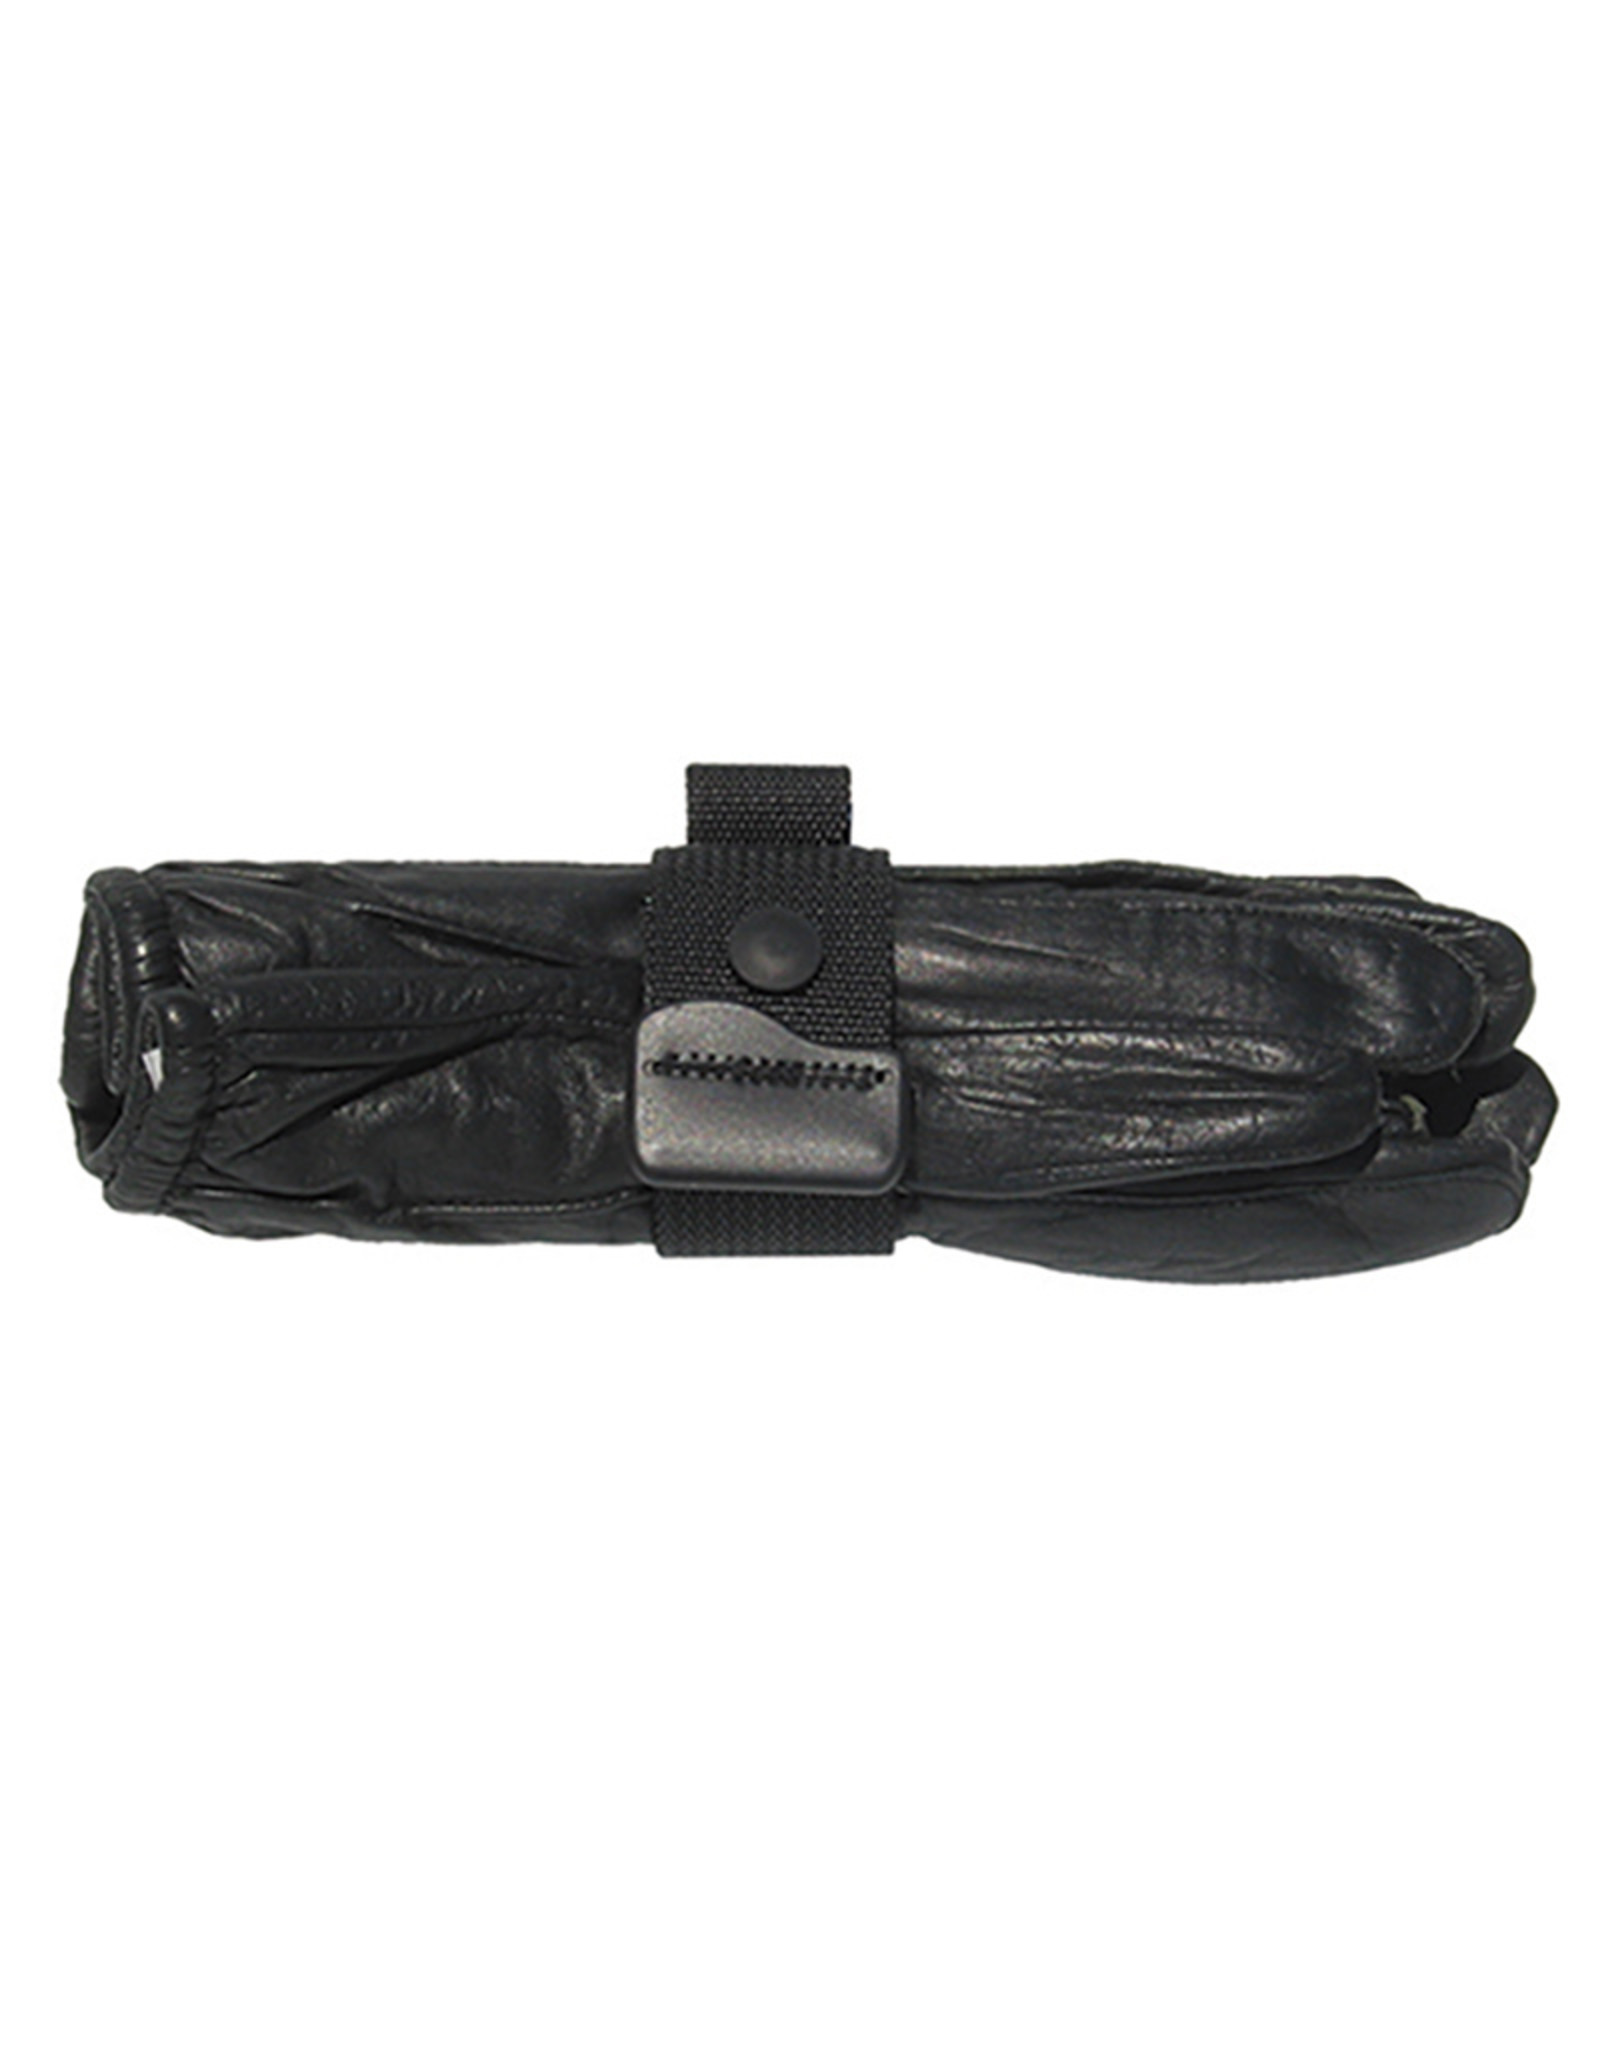 HI-TEC INTERVENTION HORIZONTAL LEATHER GLOVE CARRIER